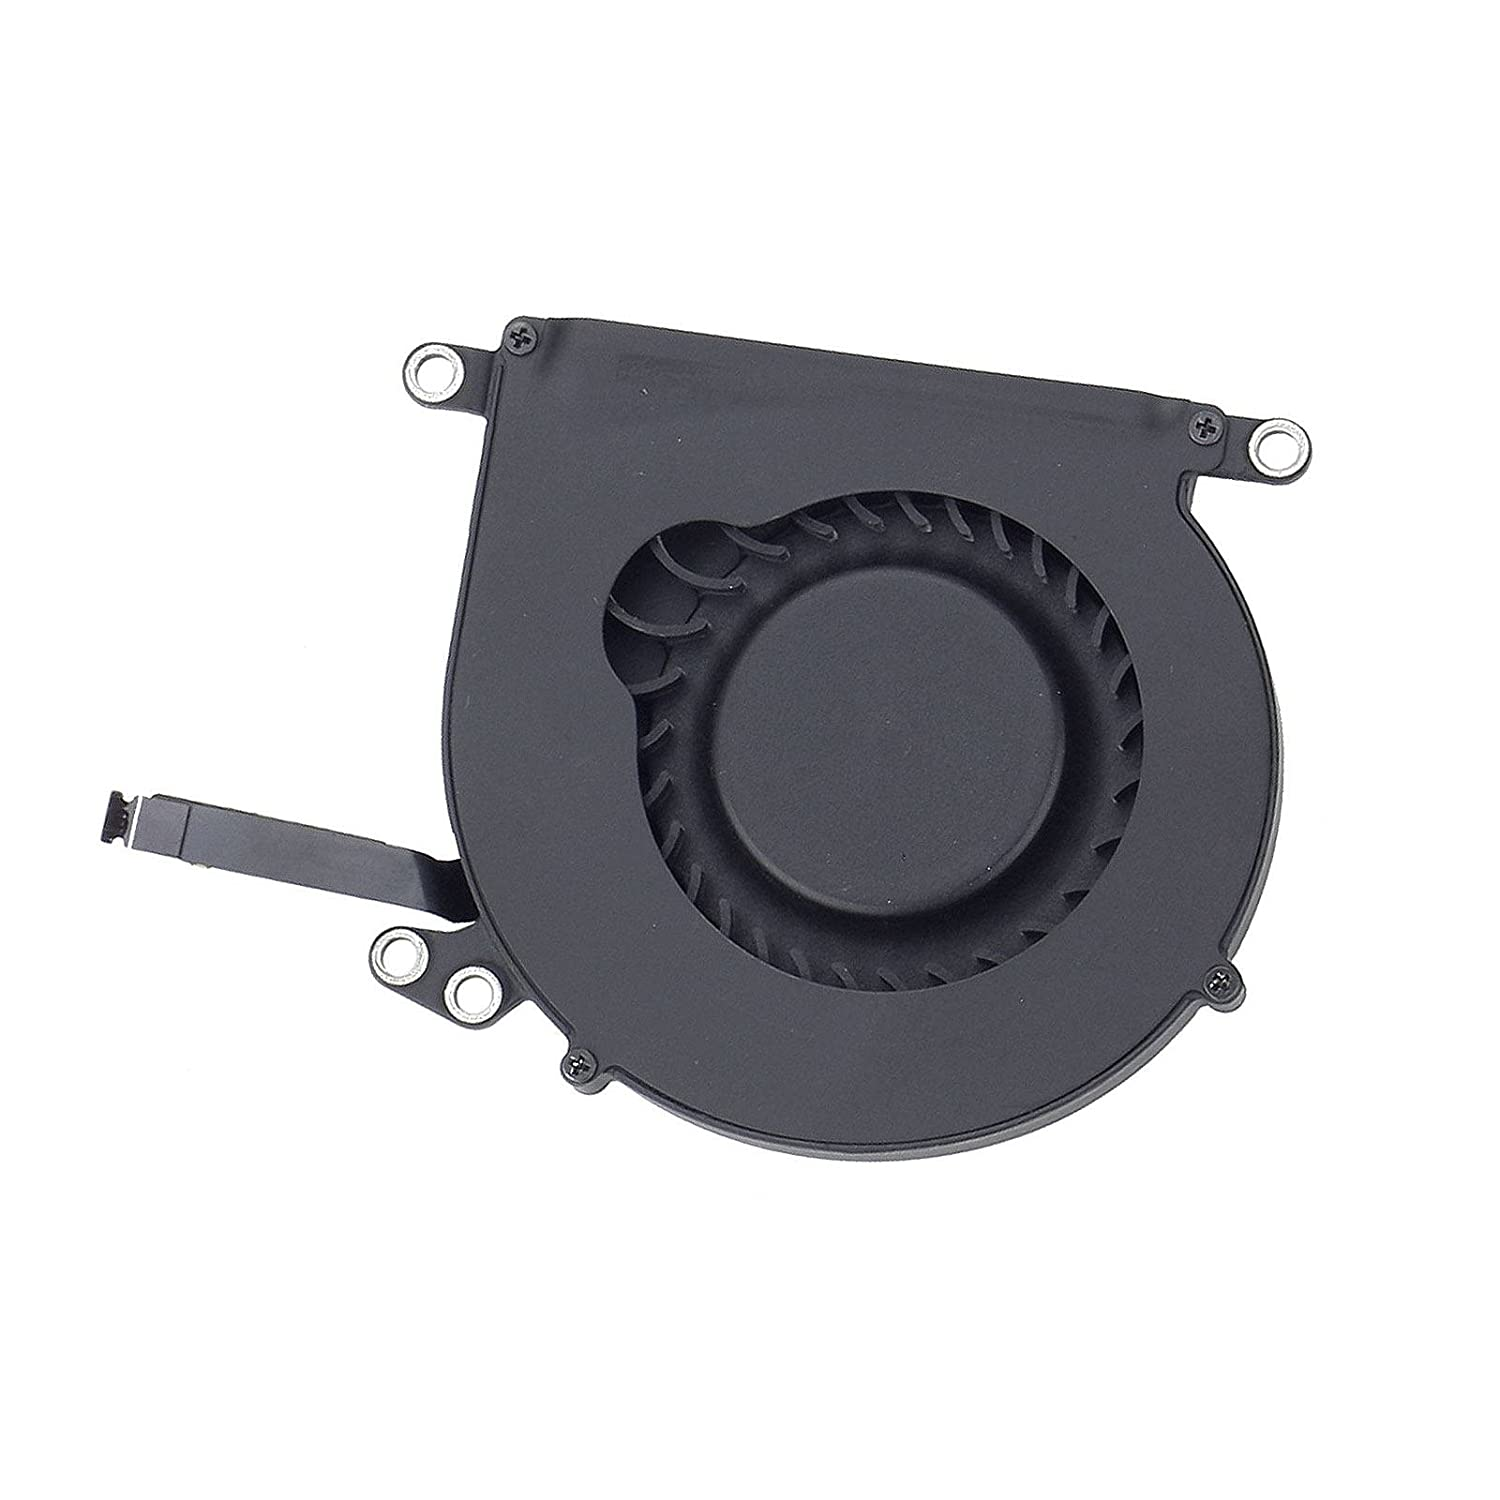 Laptop CPU cooling fan for Apple MacBook Pro Unibody 13 inch A1278 Late 2008 Mid 2009 2010 2011 2012 - ***1 Year Warranty*** (Macbook Pro 13 A1278 A1280 A1342 (2008-2012)) LAPTOPKING